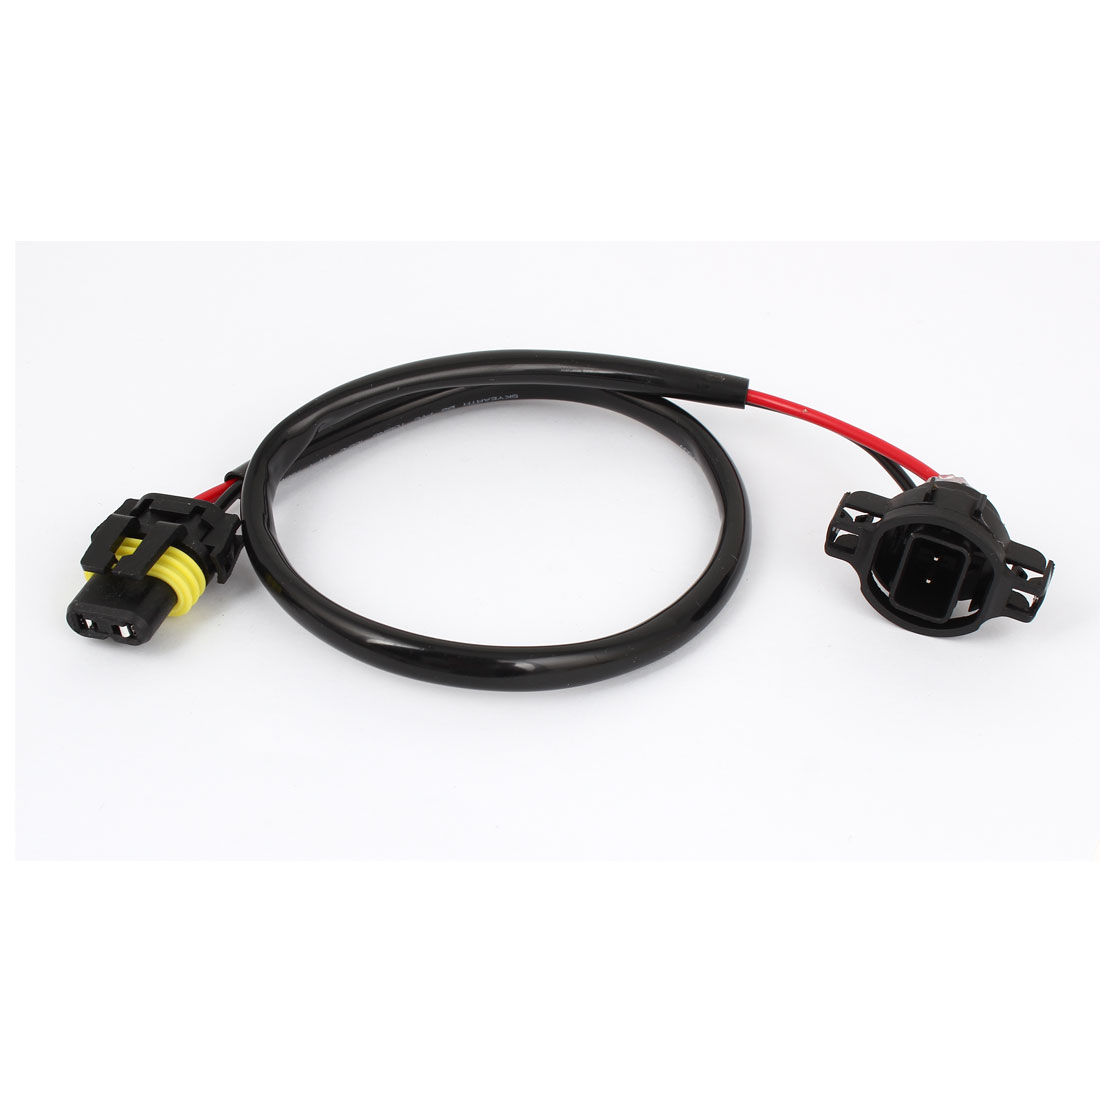 5202 H16 Wire Harness for HID Ballast to Stock Socket for HID Conversion Kit